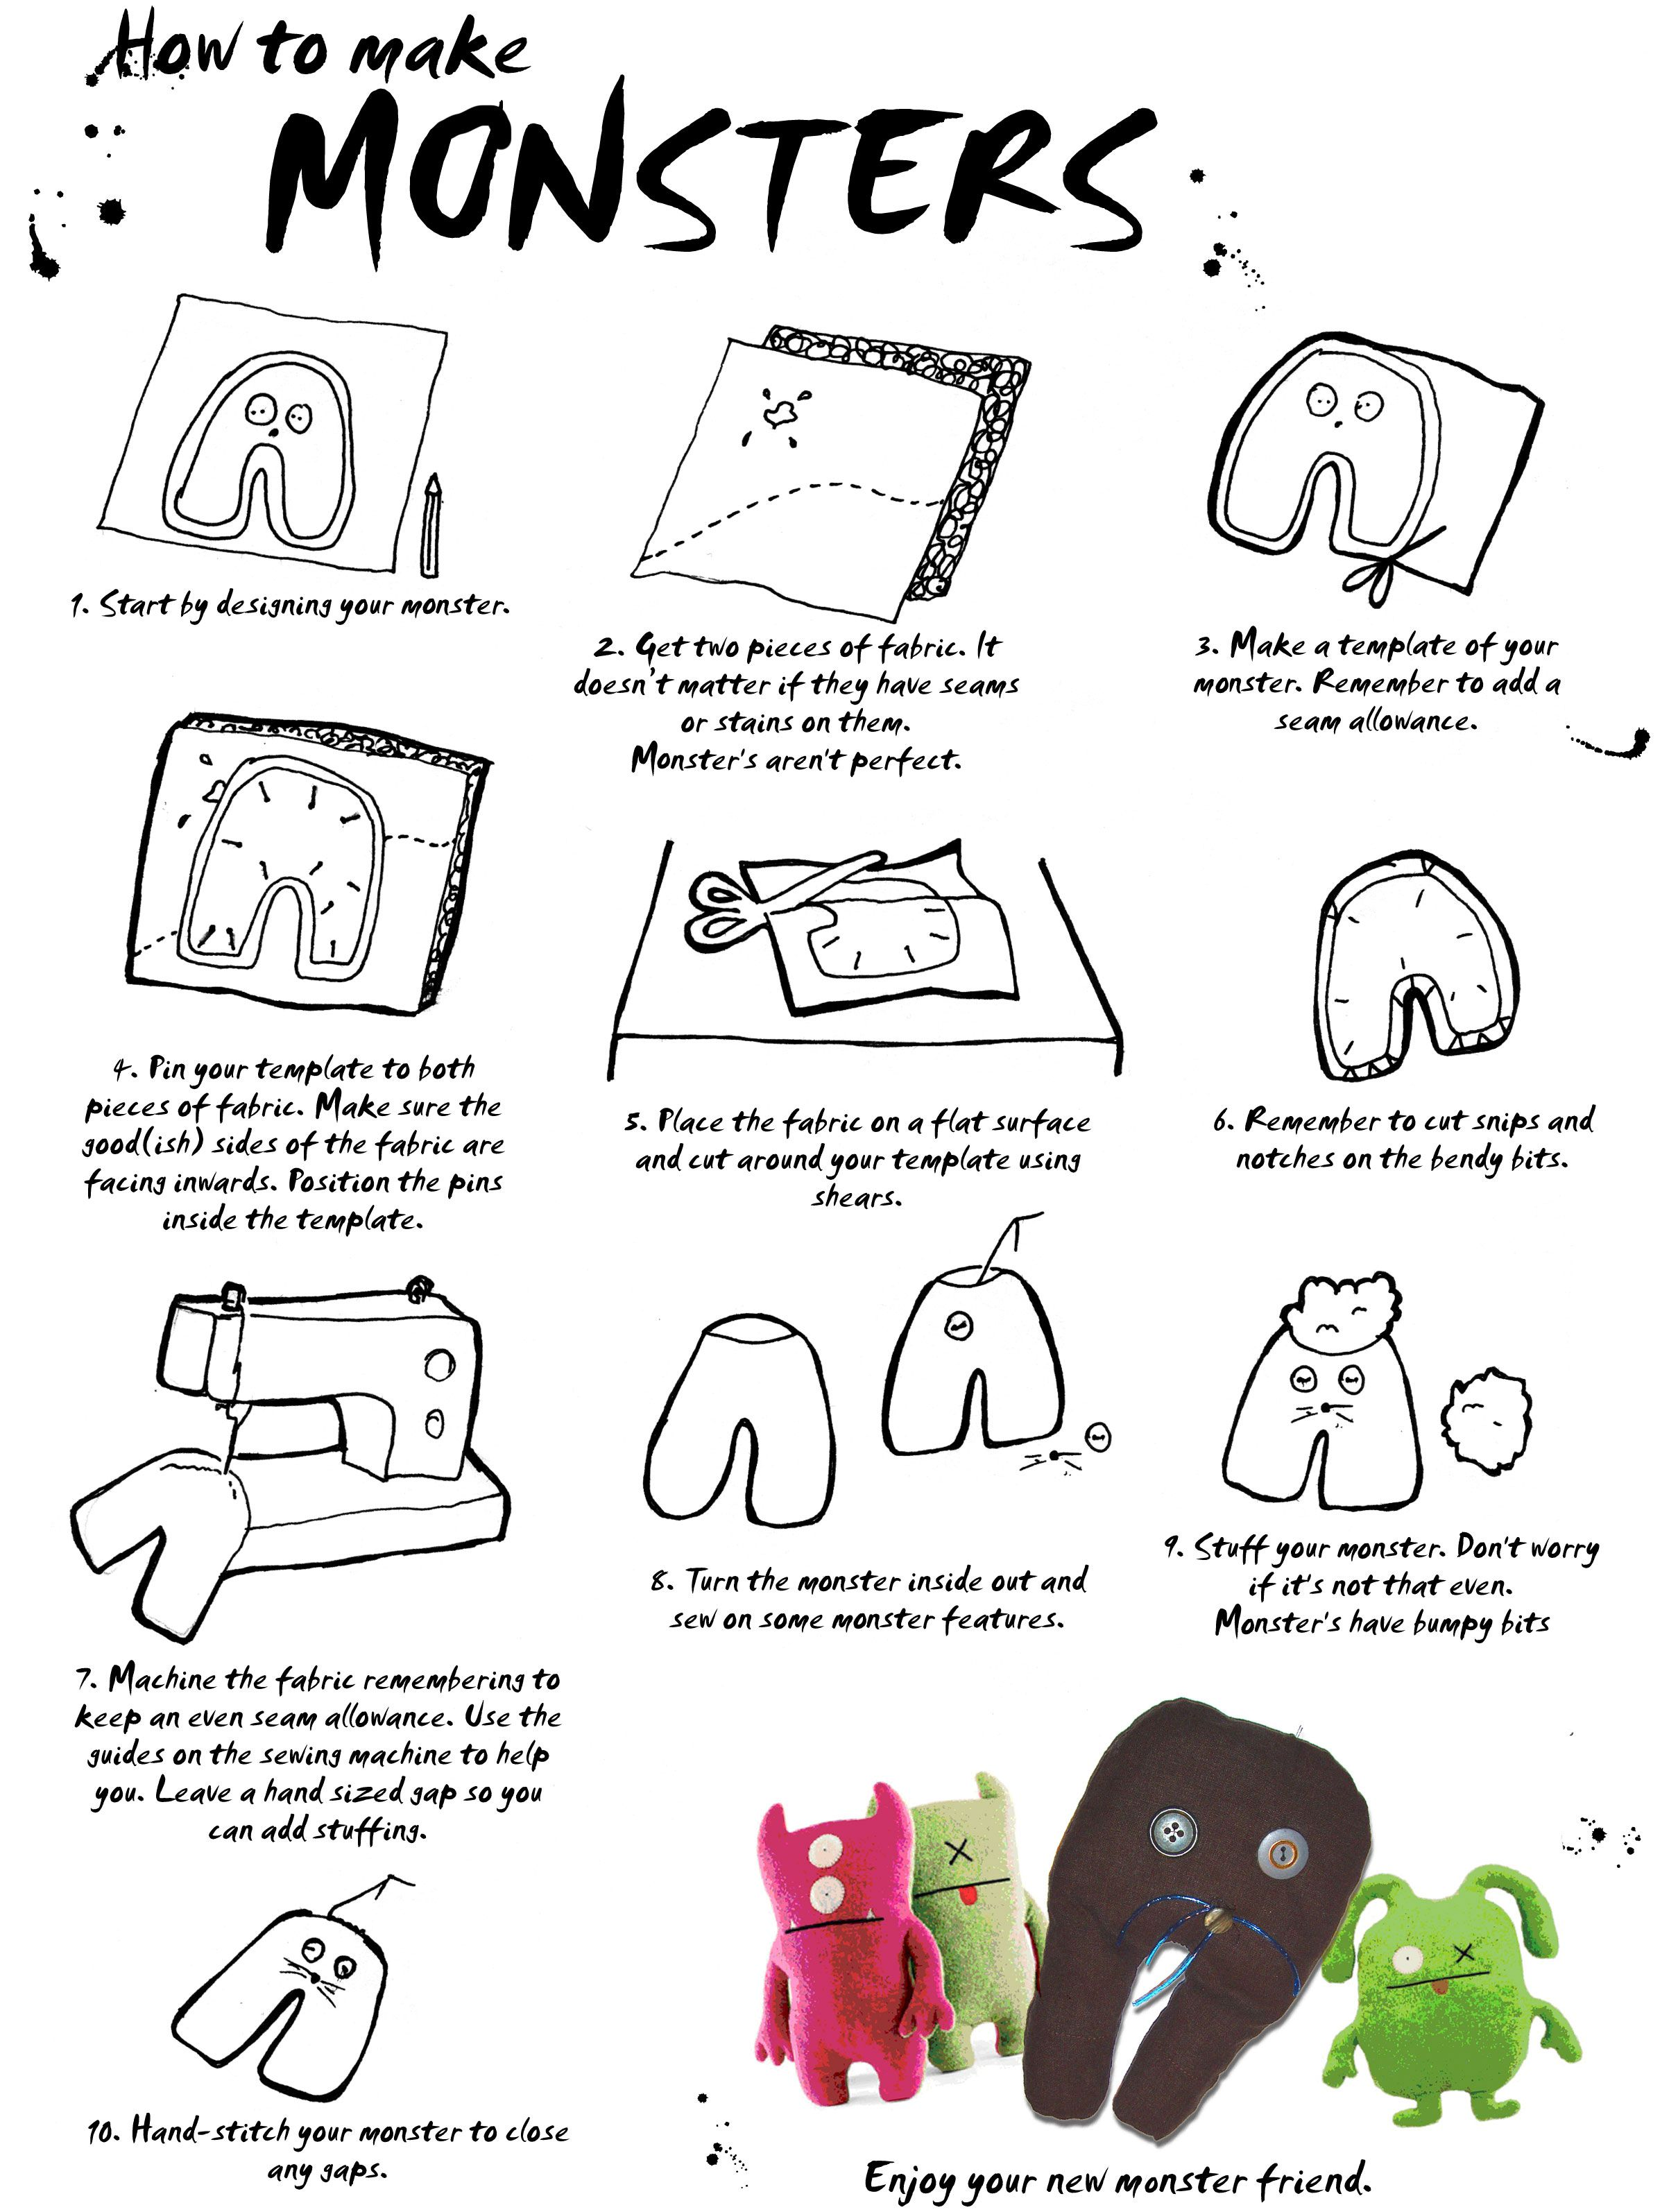 Signinschool Uploads 2 6 0 6 Monster Worksheet